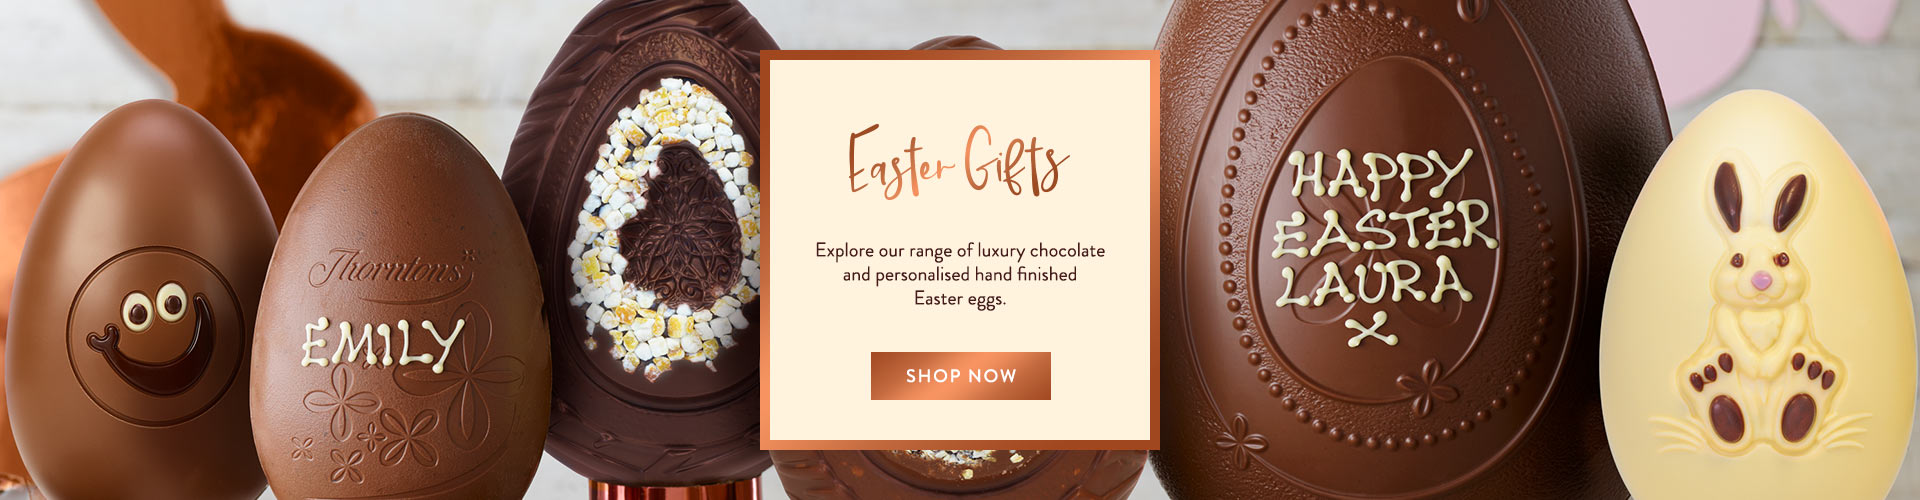 we've been producing incredible chocolate Easter eggs for almost a hundred years, which is why Easter isn't Easter without Thorntons.